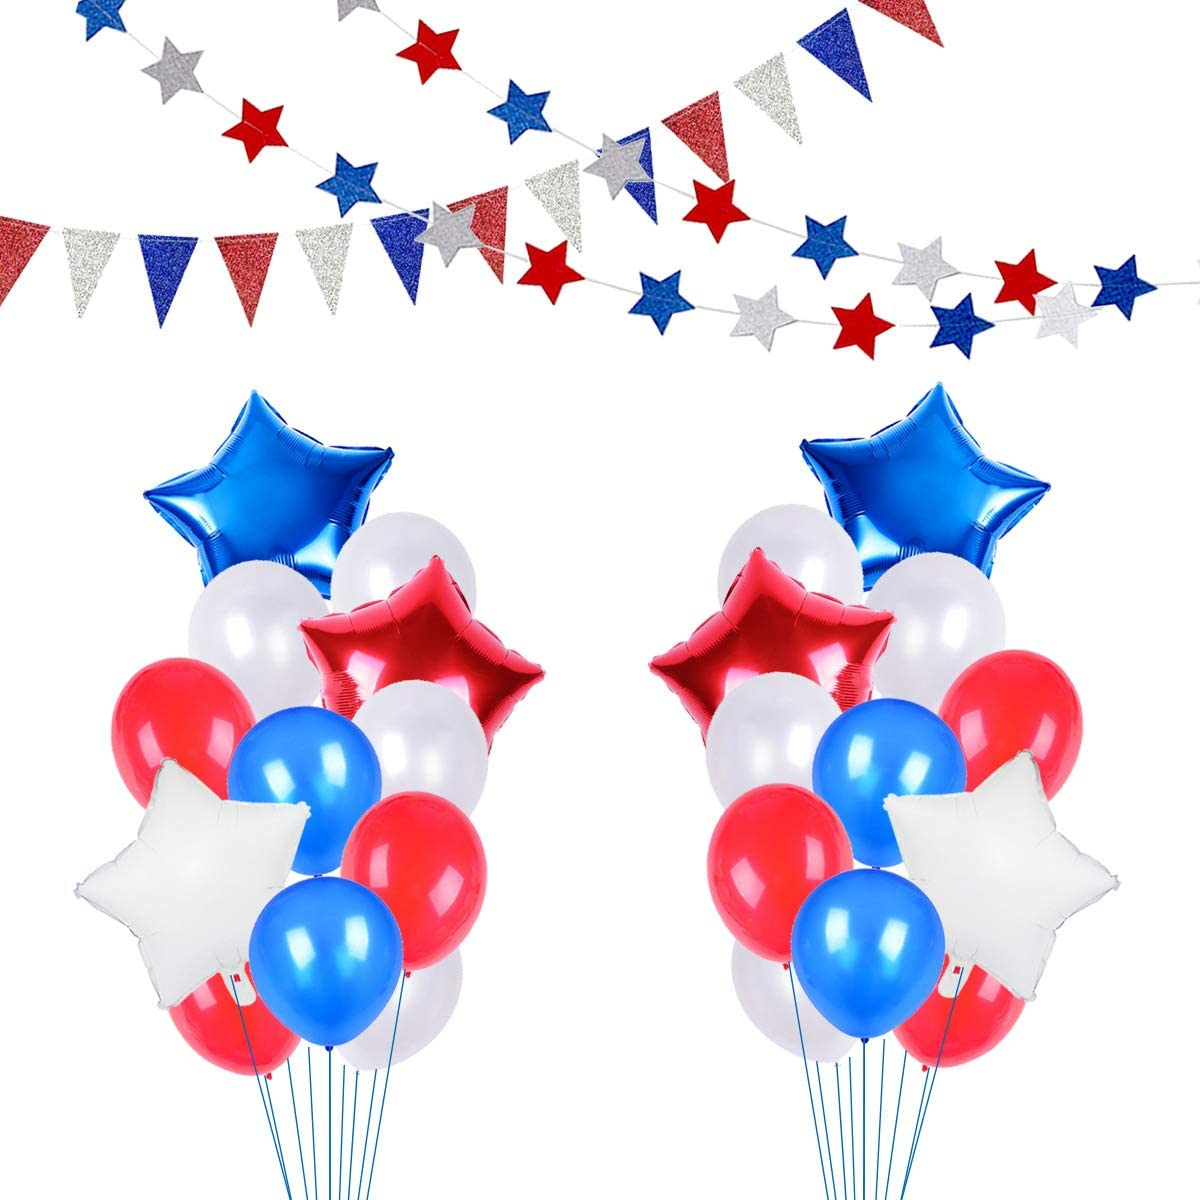 JumDaQ Red White Blue Star Foil Balloons Banner Party Bunting and Latex Balloons for Birthday Themed Party Patriotic Events American Holidays Decorations( 40 Packs)